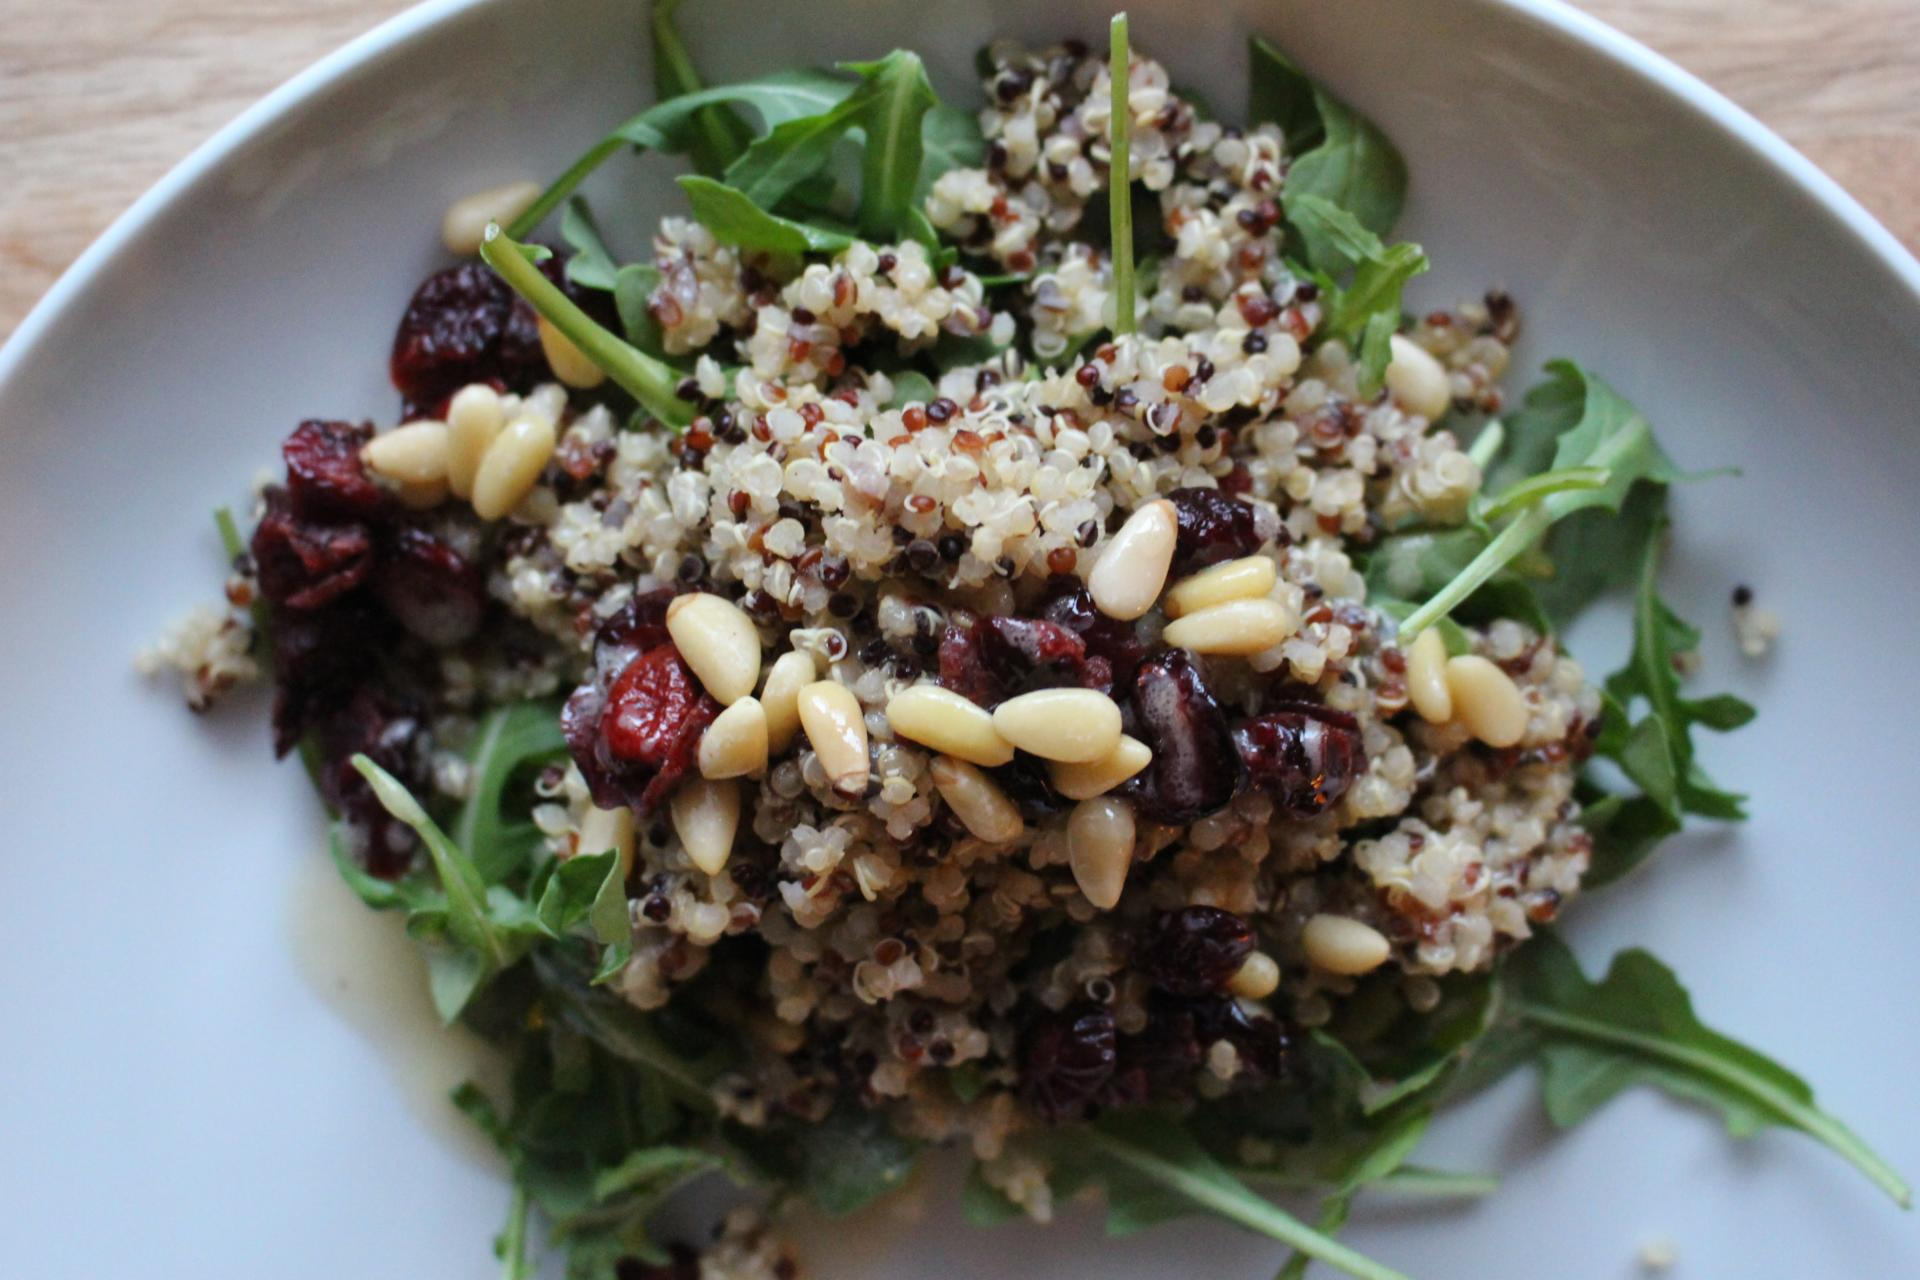 VEGGIES: Cranberry Arugula Quinoa Salad  Recipe with Honey Mustard Dressing by New Jersey foodie blogger What's For Dinner Esq.